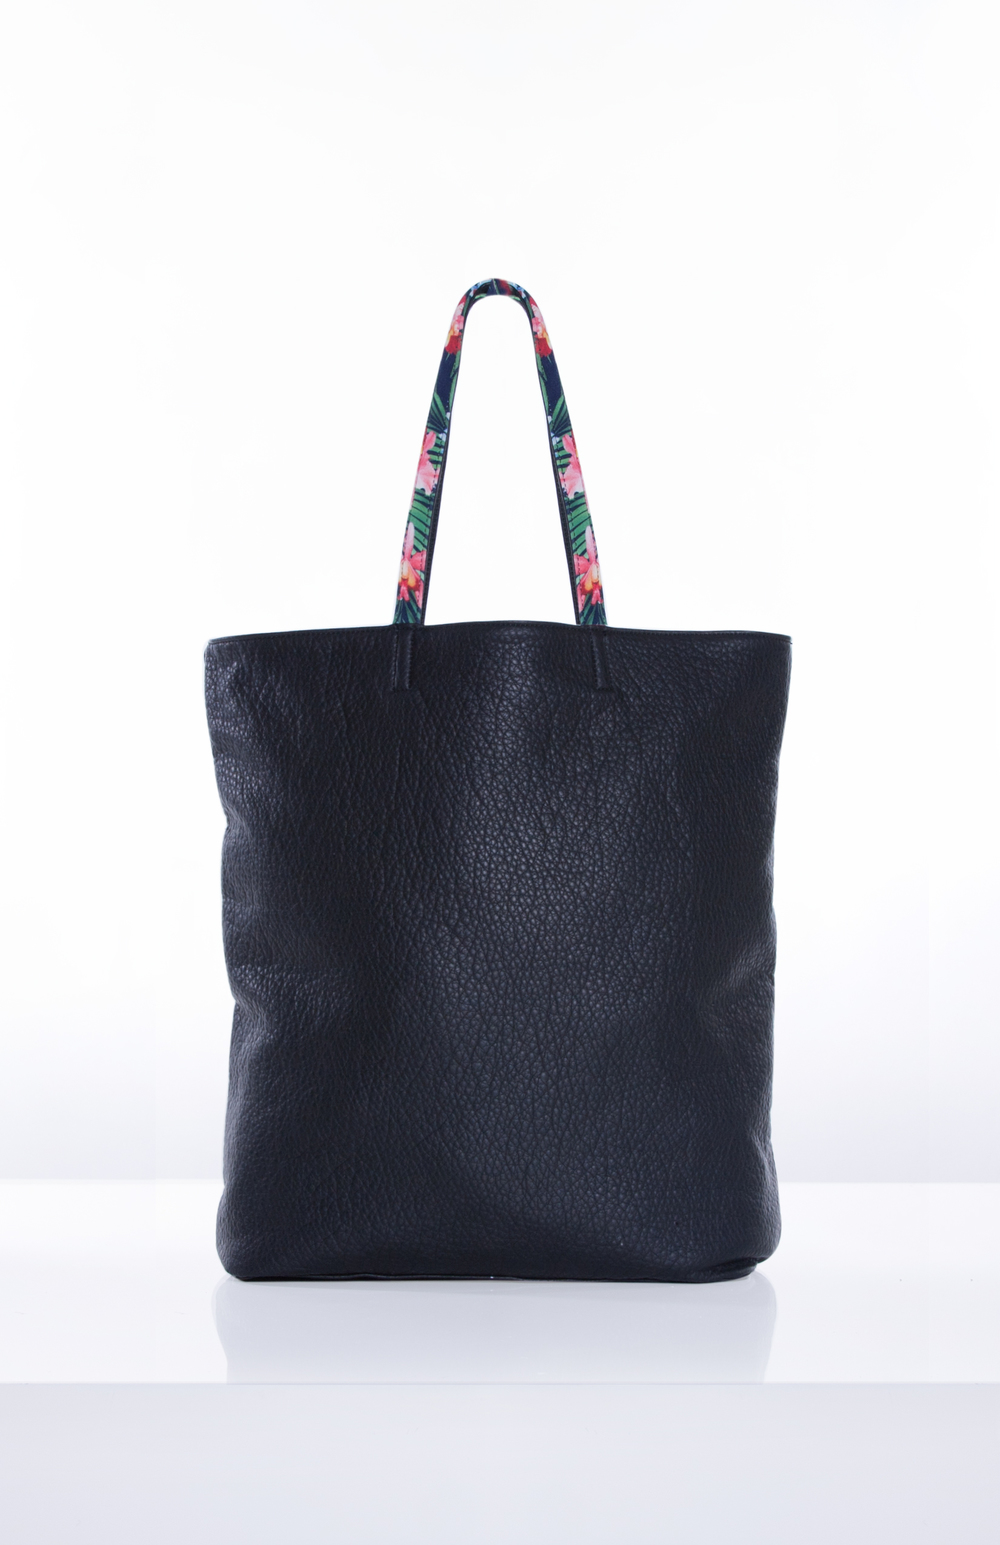 REVERSIBLE TOTE- Printed Neoprene + Pebbled Black PU